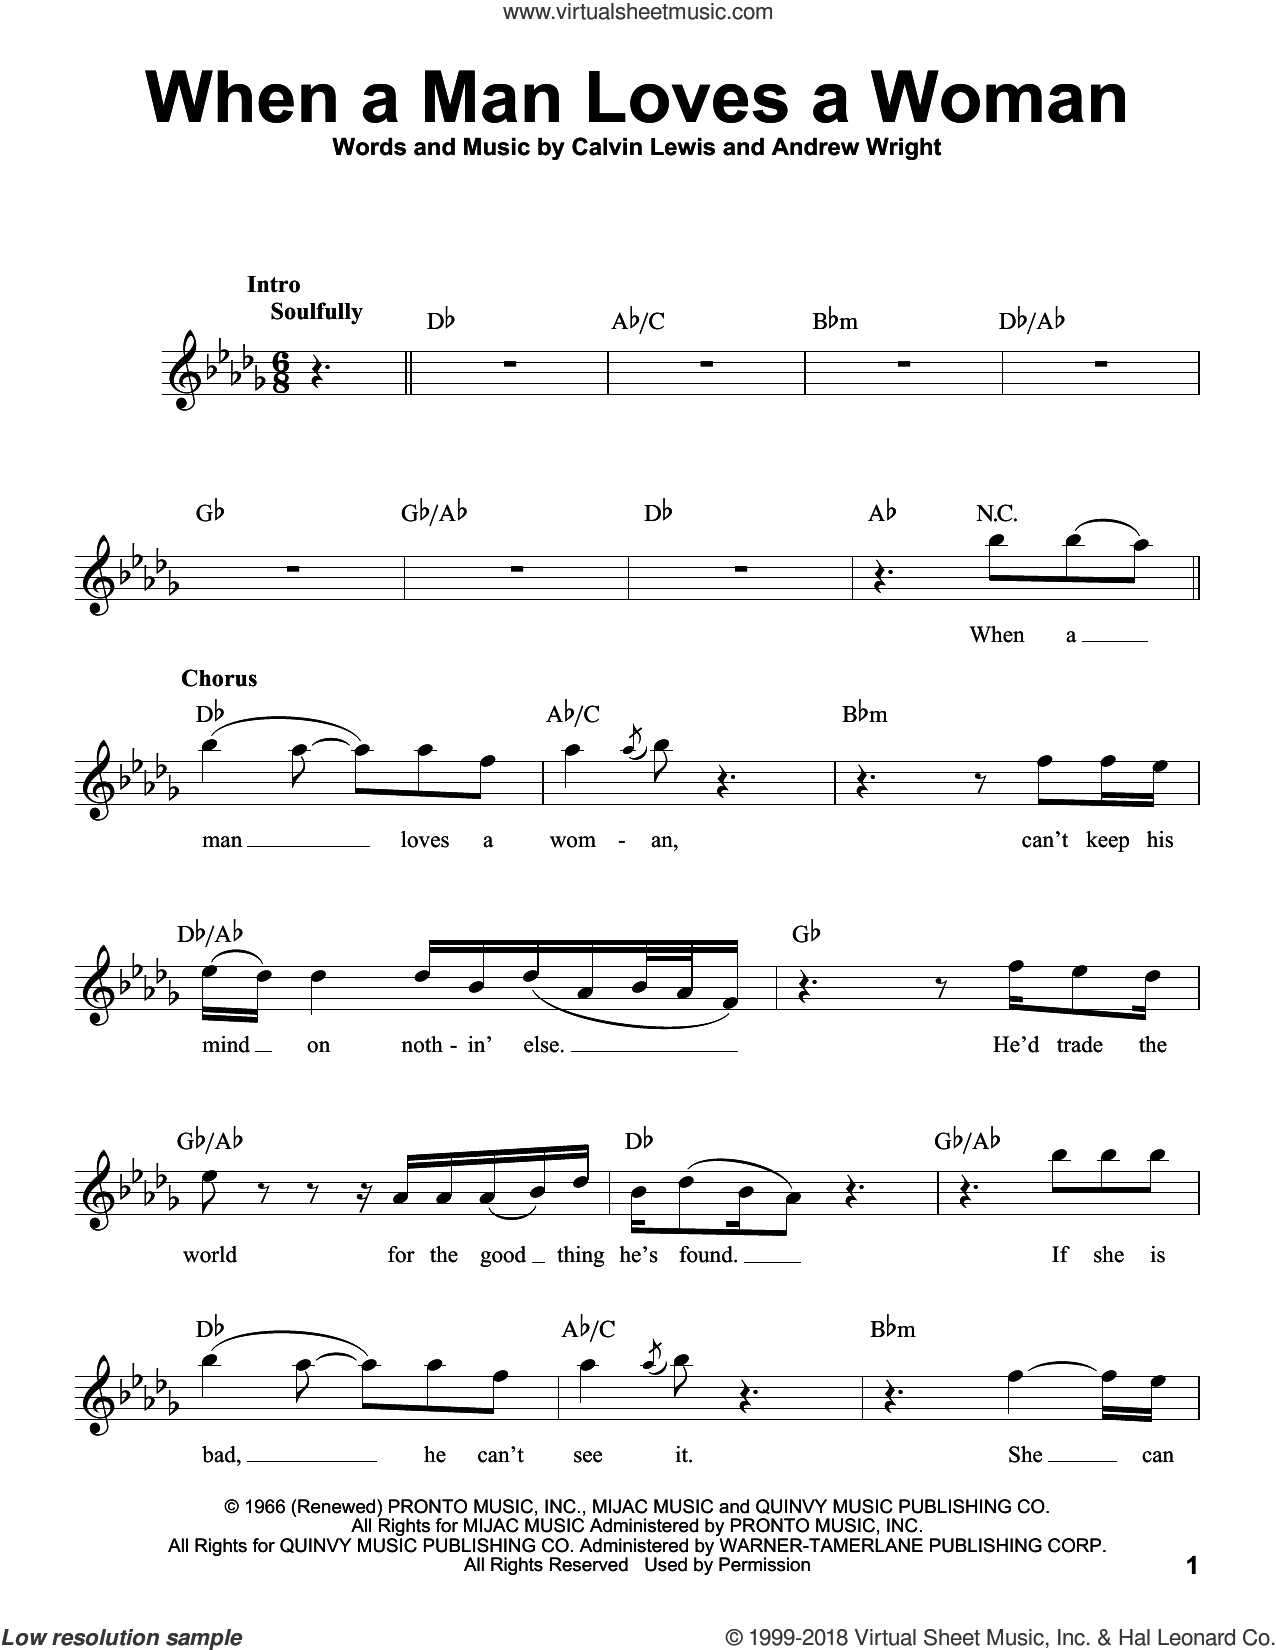 When A Man Loves A Woman sheet music for voice solo by Percy Sledge, Andrew Wright and Calvin Lewis, intermediate skill level